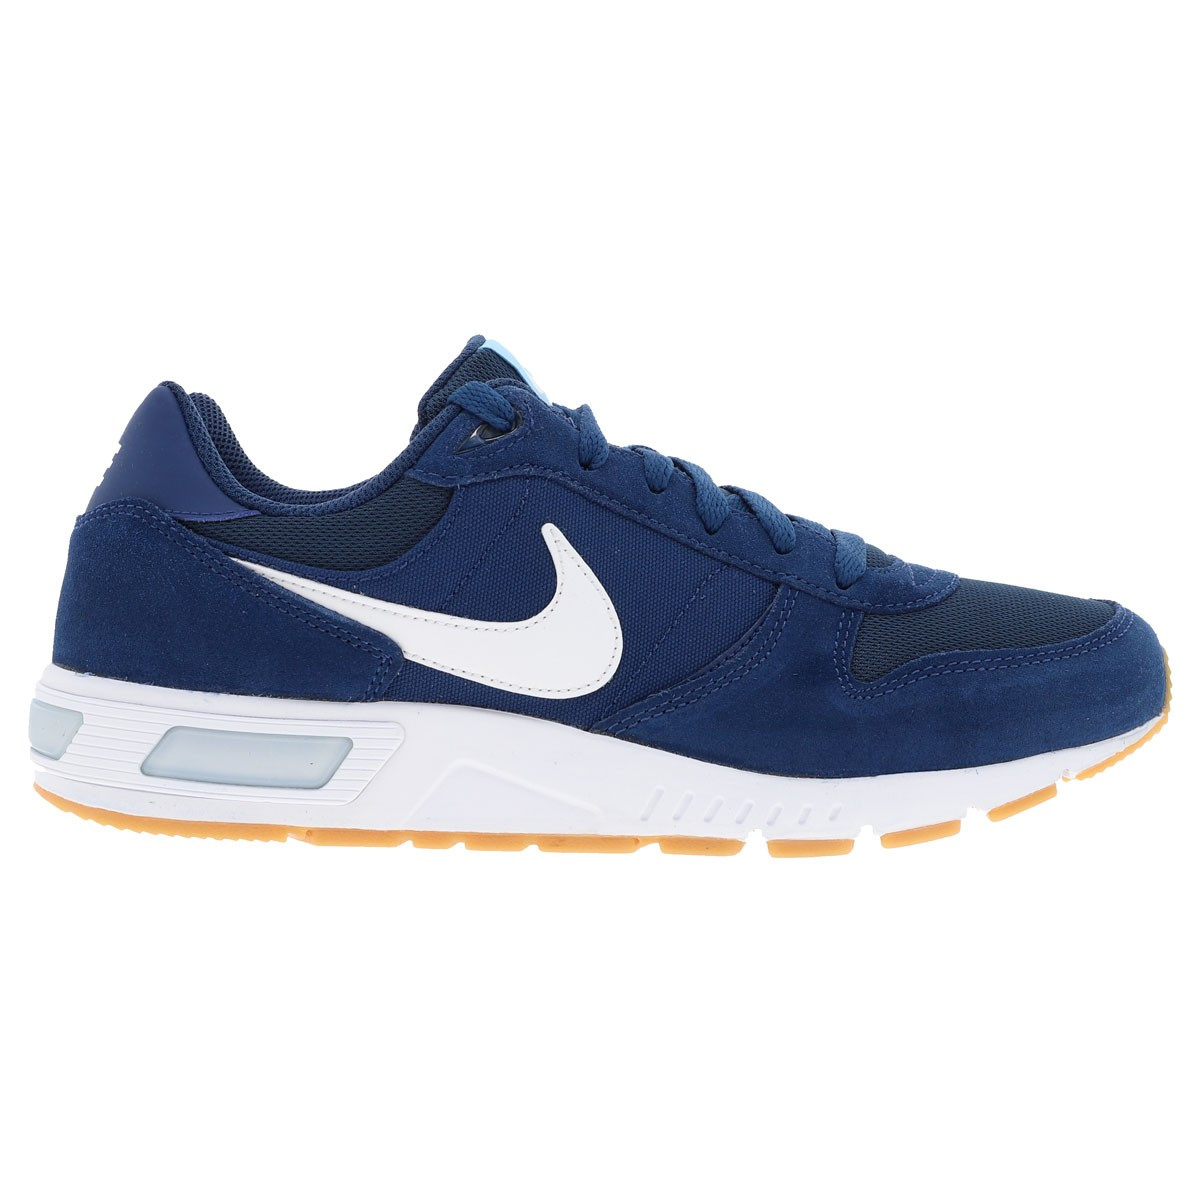 NIKE Baskets Nightgazer homme bleu